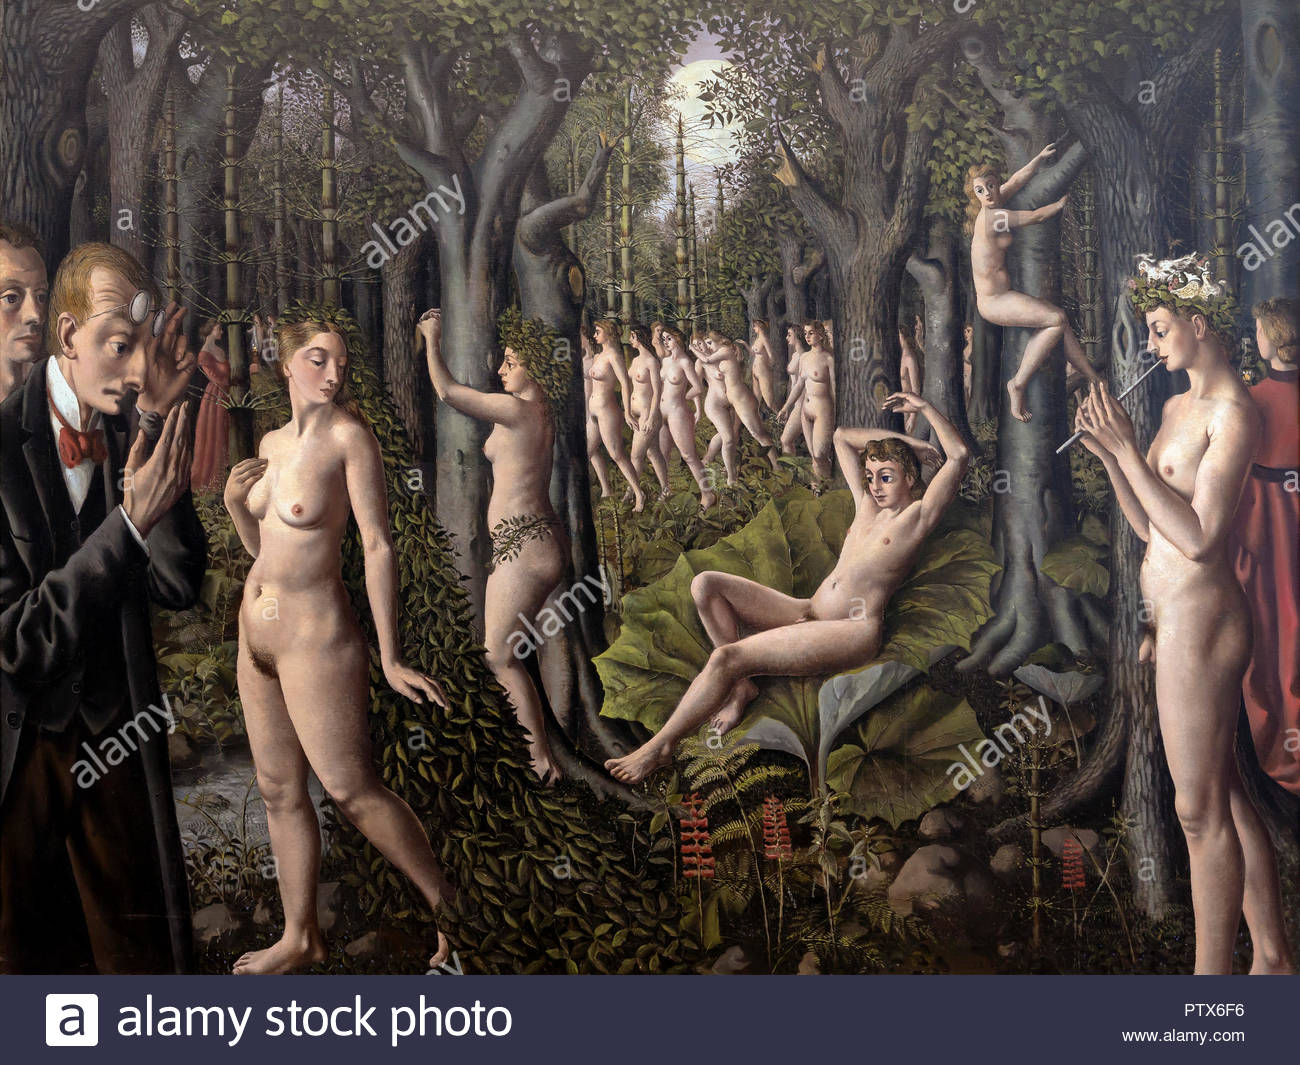 The Awakening of the Forest, Paul Delvaux, 1939, Art Institute of Chicago, Chicago, Illinois, USA, North America - Stock Image